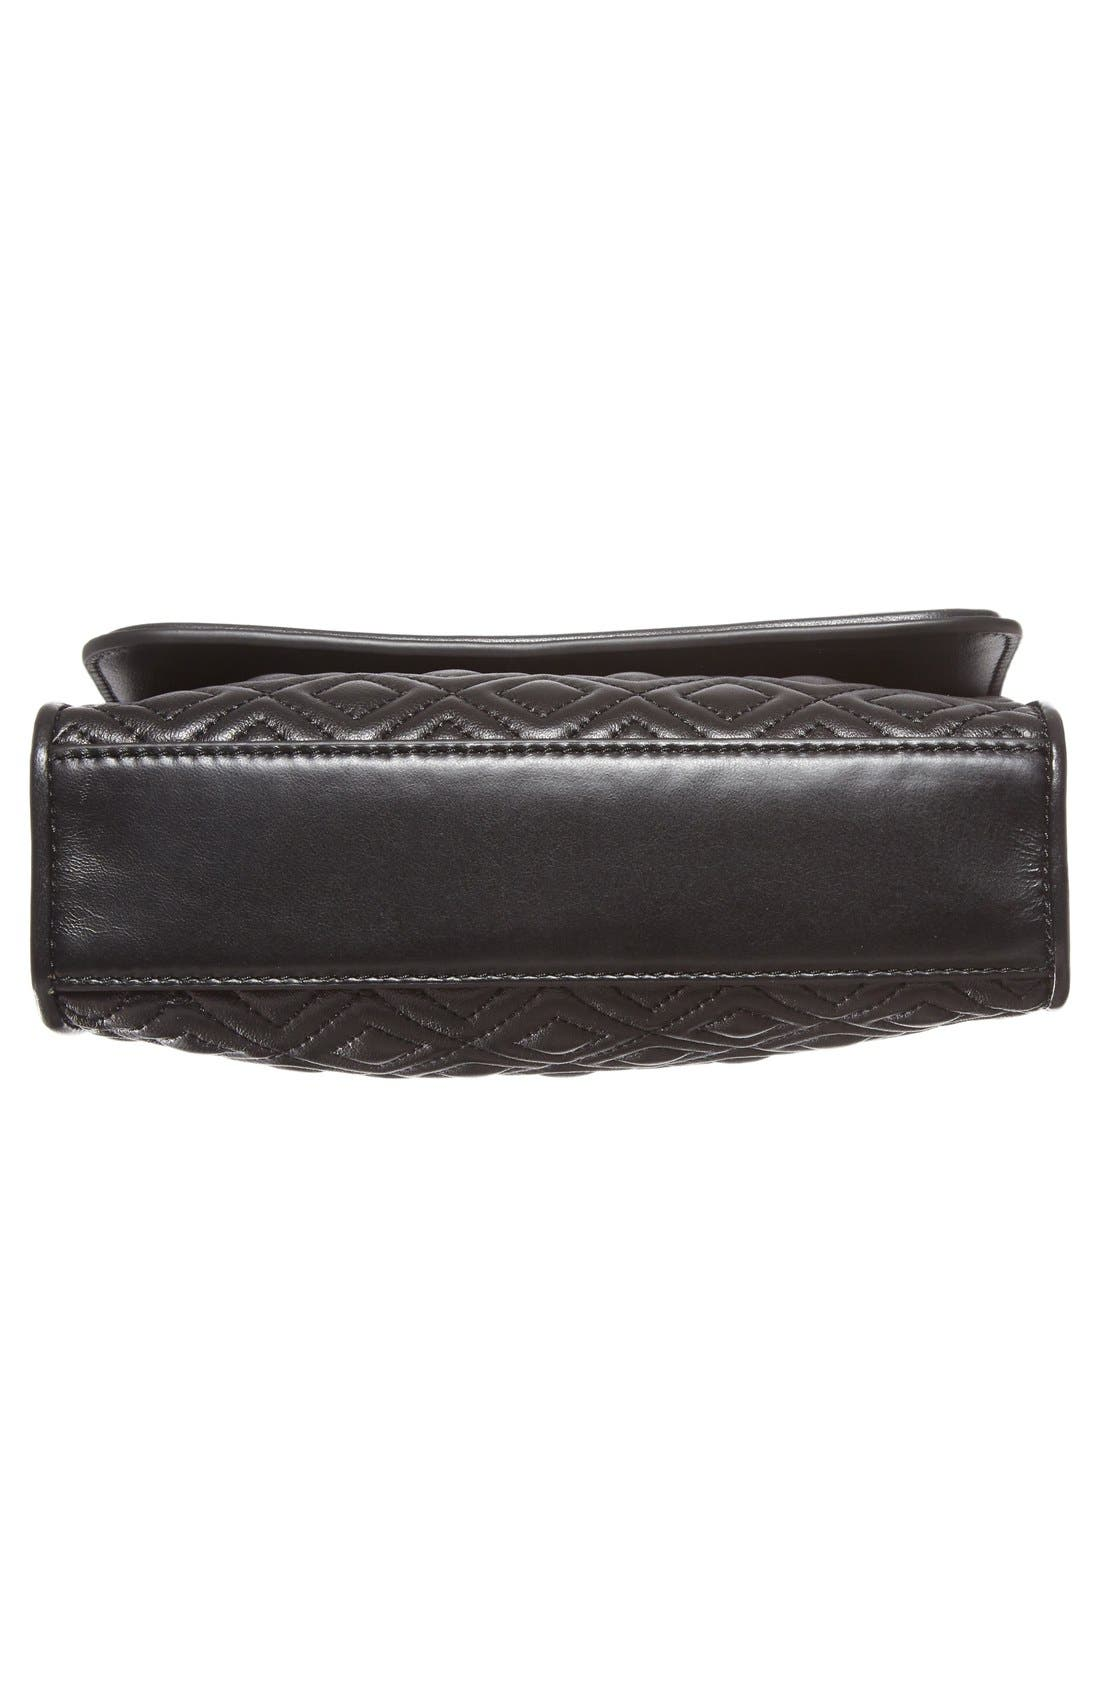 'Small Fleming' Quilted Leather Shoulder Bag,                             Alternate thumbnail 21, color,